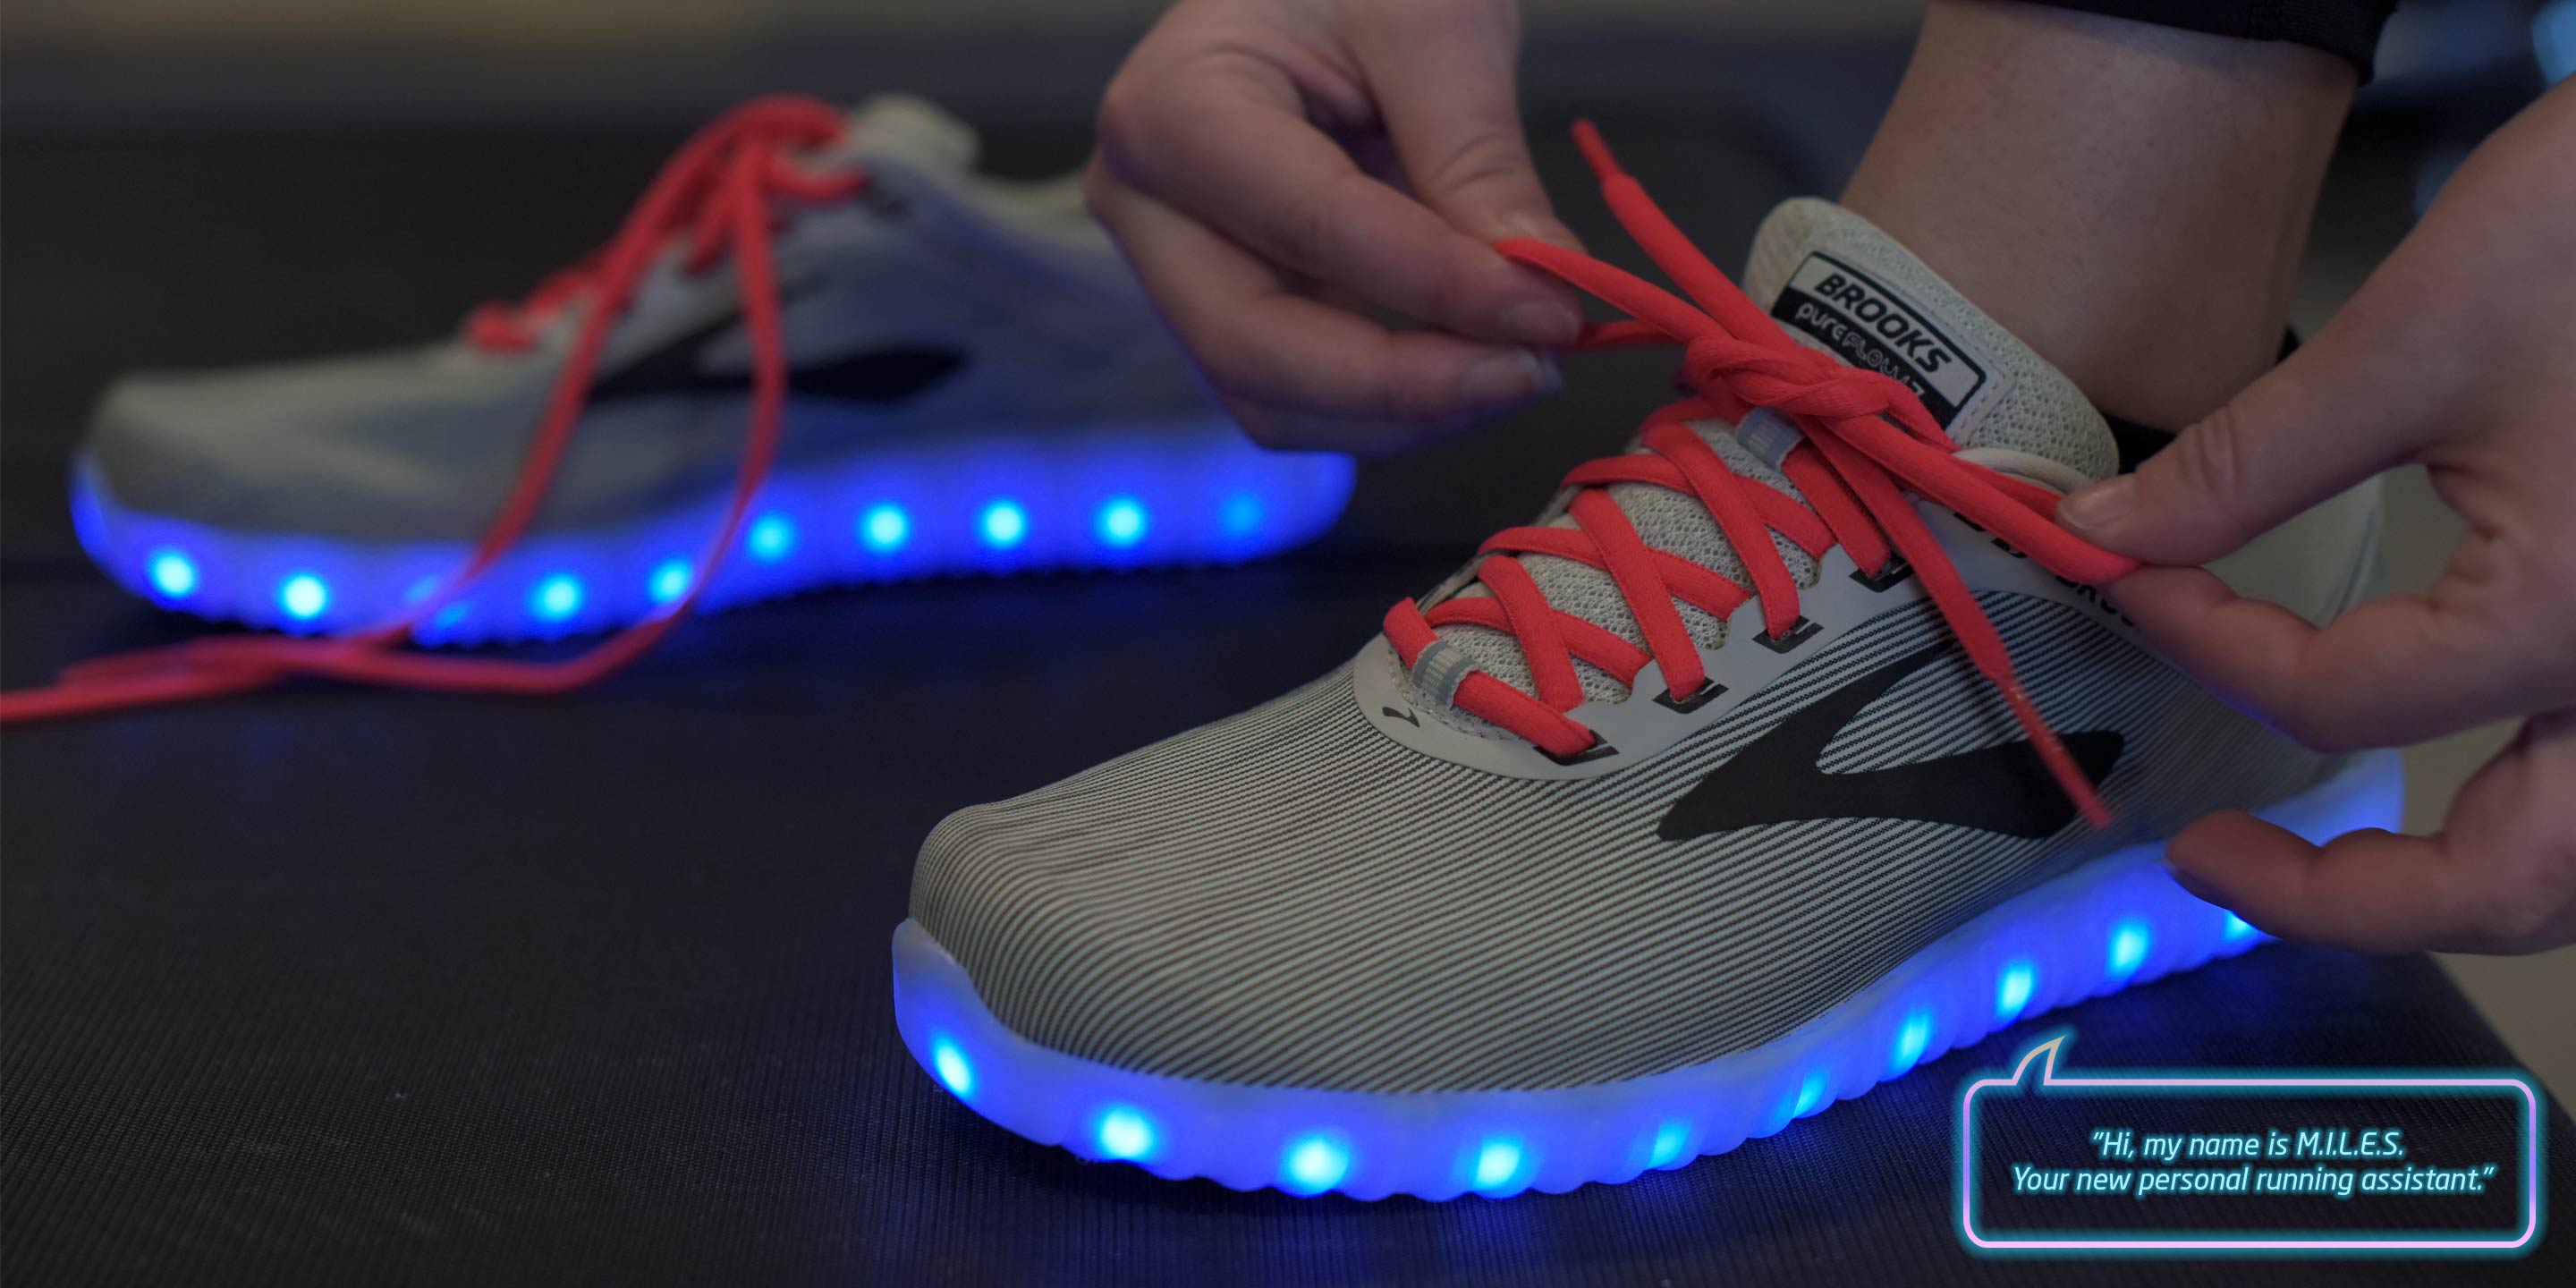 f3e8e2c8d32 Brooks Expertly Owns April Fools  with  Release  of Voice-Enabled Running  Shoe